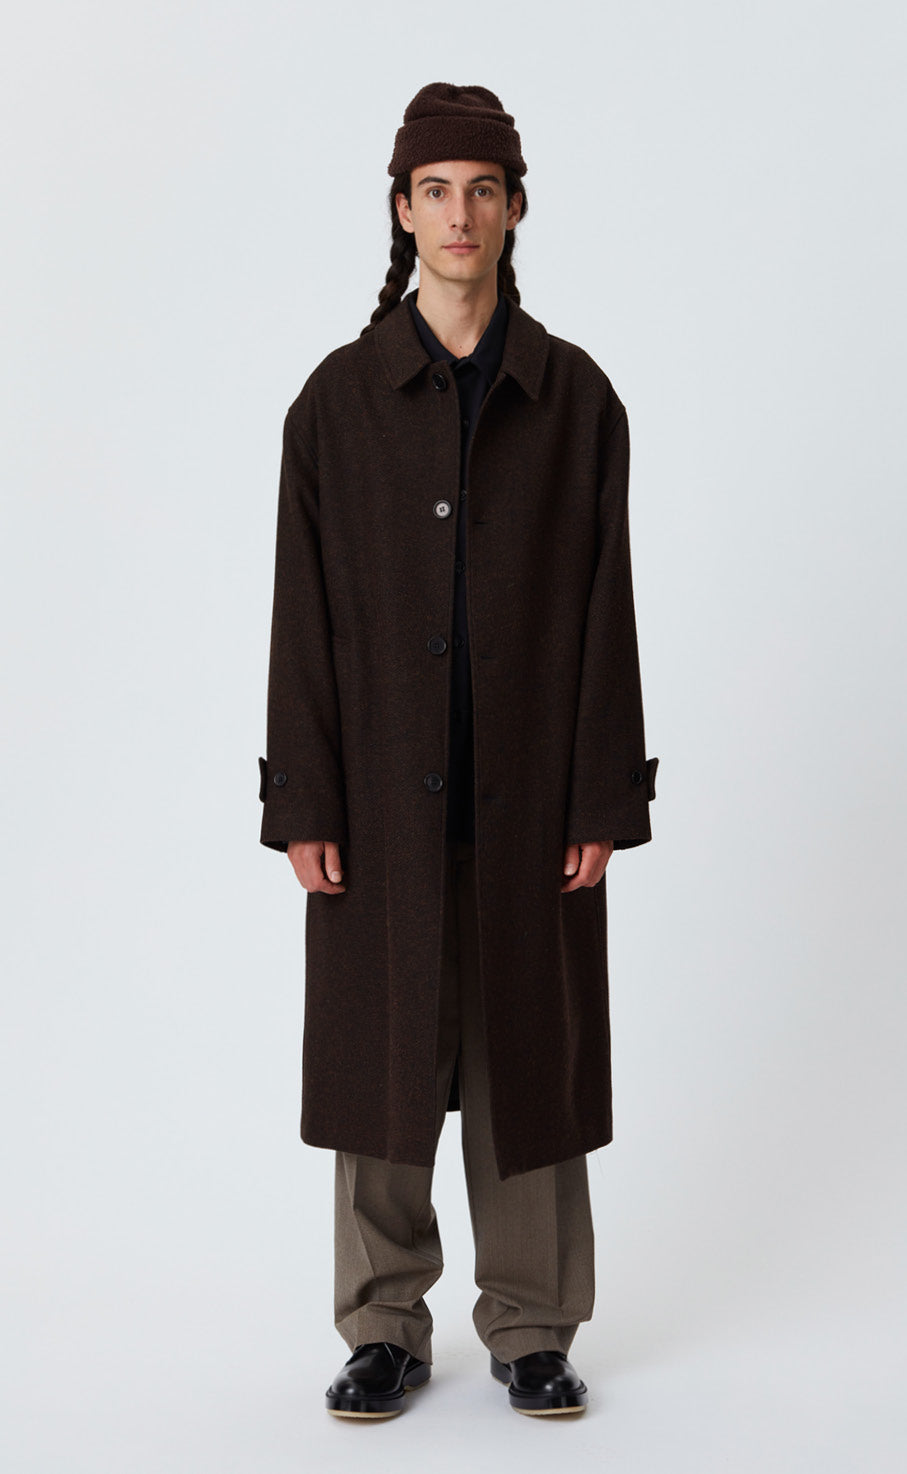 HOLLIS COAT - BROWN TWEED